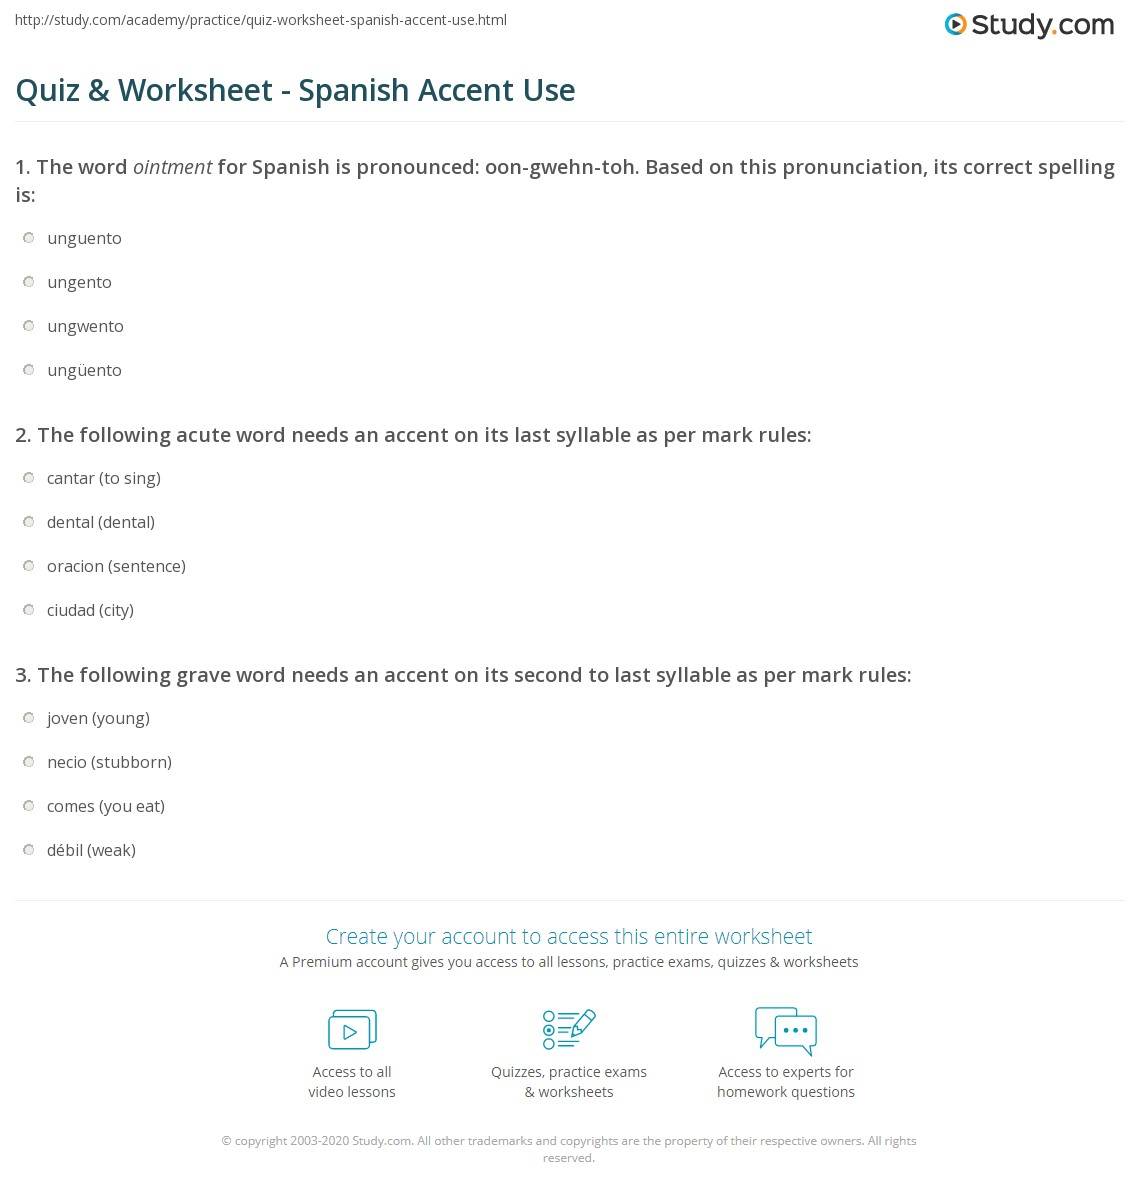 Quiz & Worksheet - Spanish Accent Use | Study.com